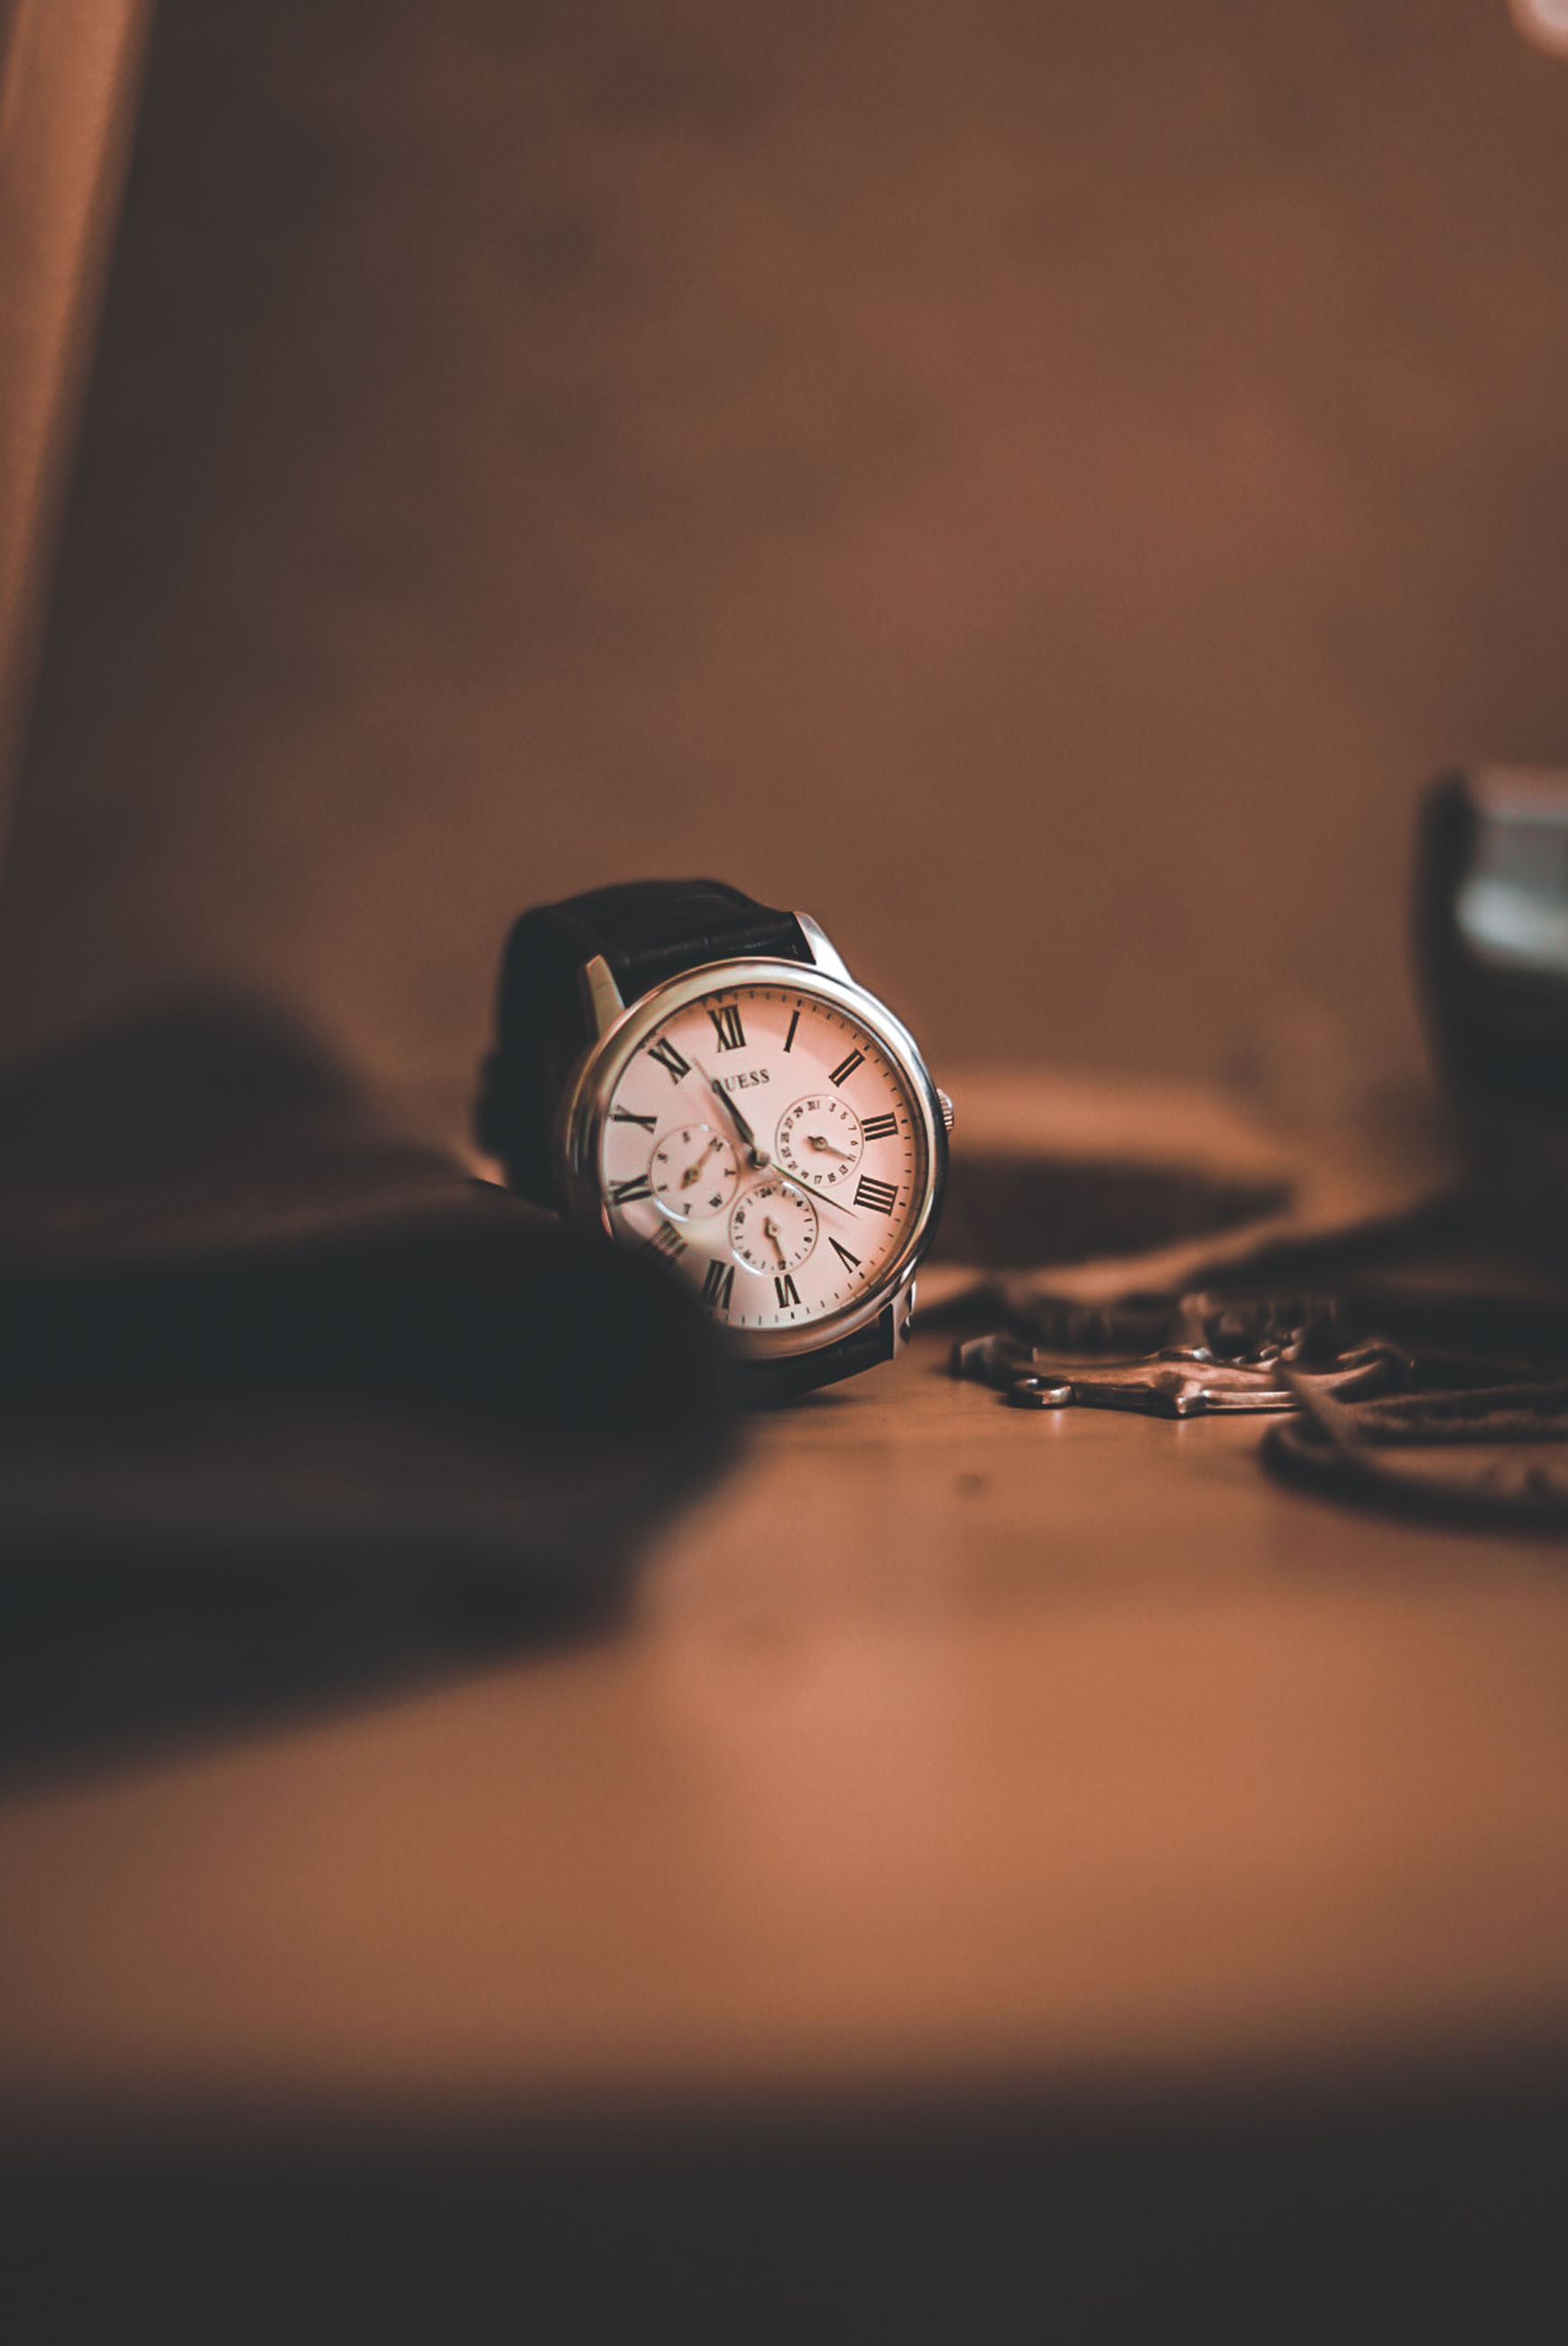 watch, time, close-up, clock, black, light, hand, indoors, wristwatch, selective focus, instrument of time, darkness, yellow, macro photography, still life, accuracy, metal, table